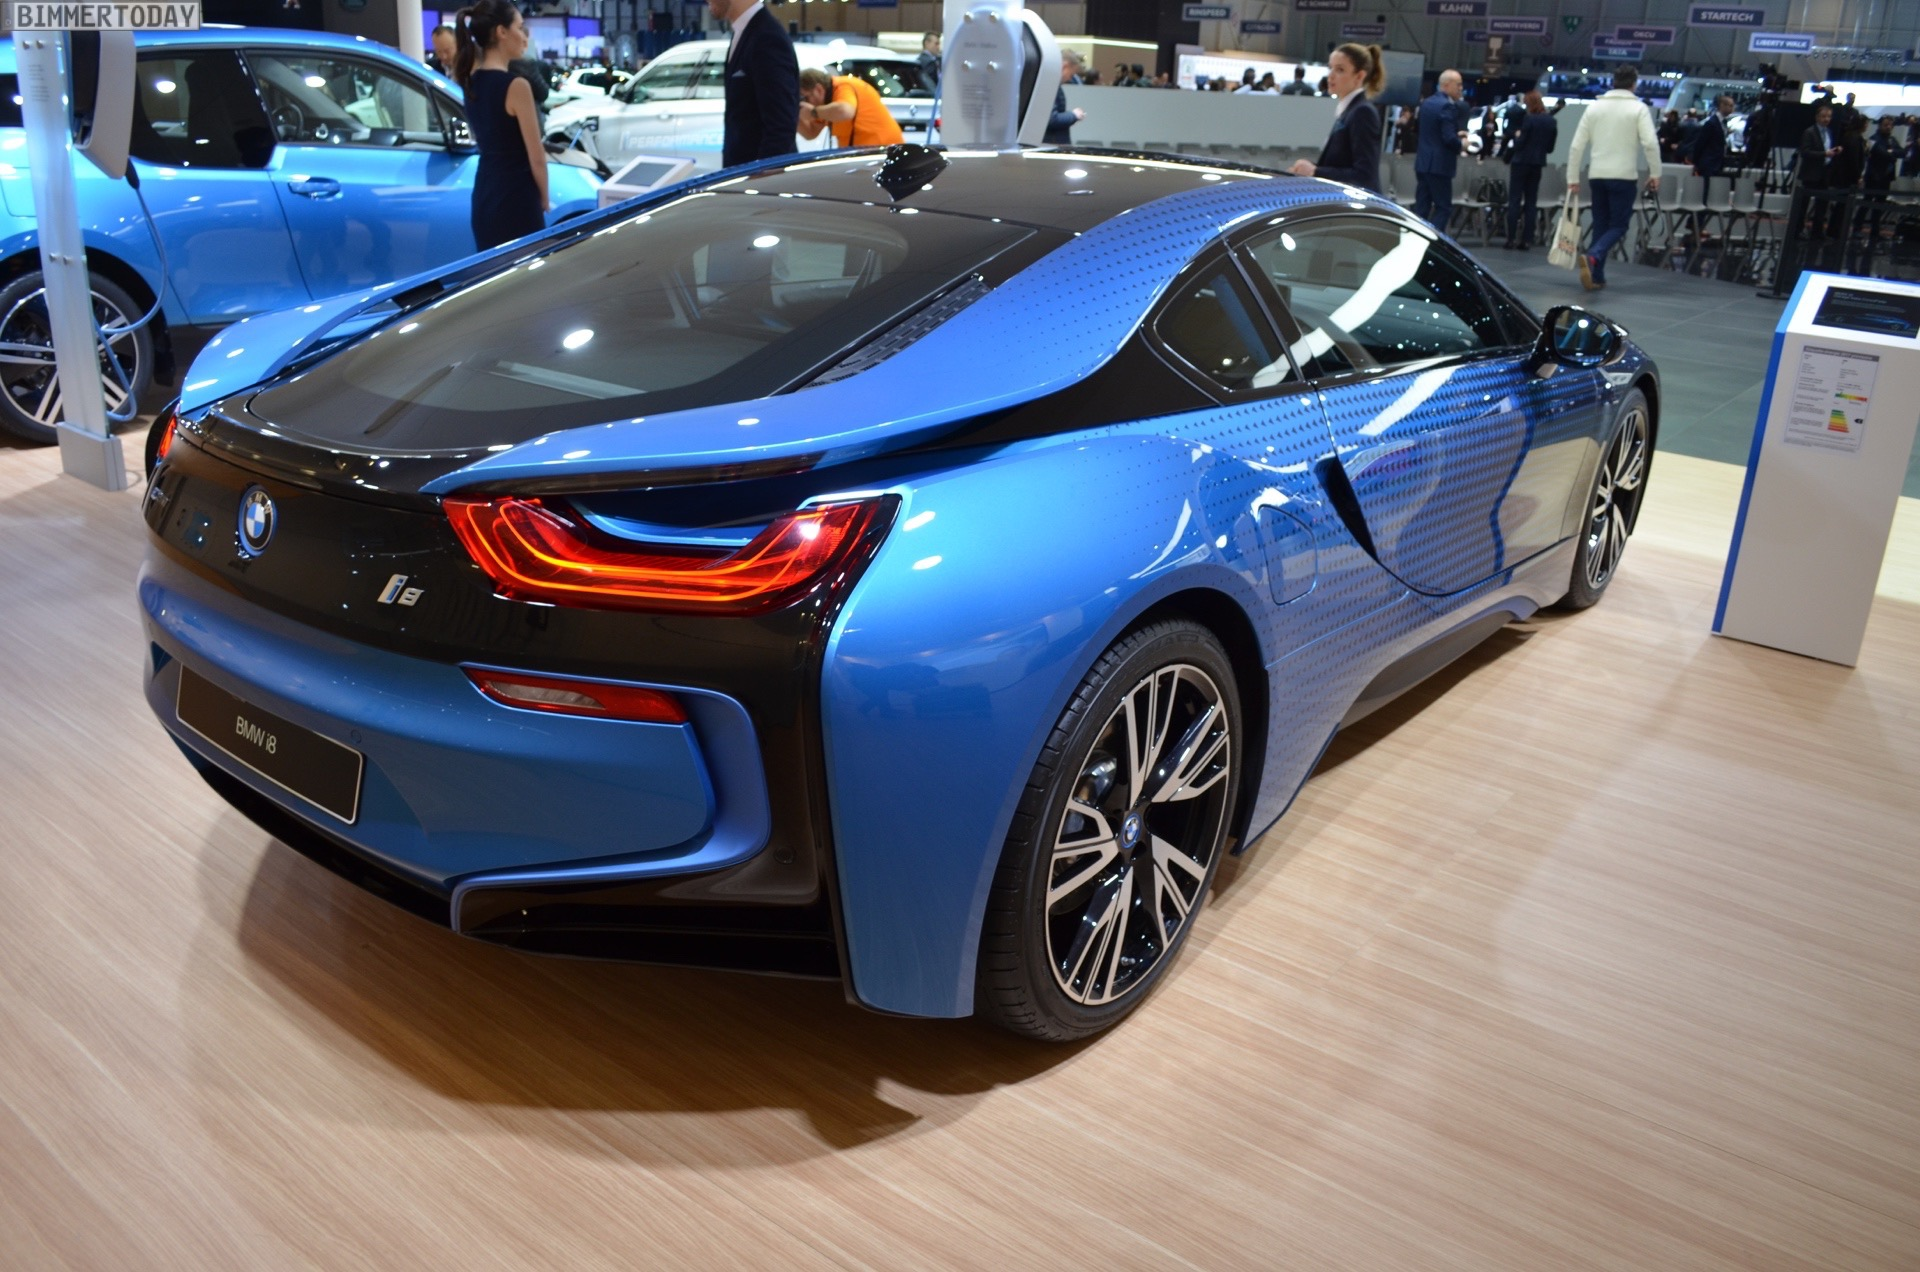 You don't need to pay road tax with the BMW i8 and you can enjoy up to 134mpg